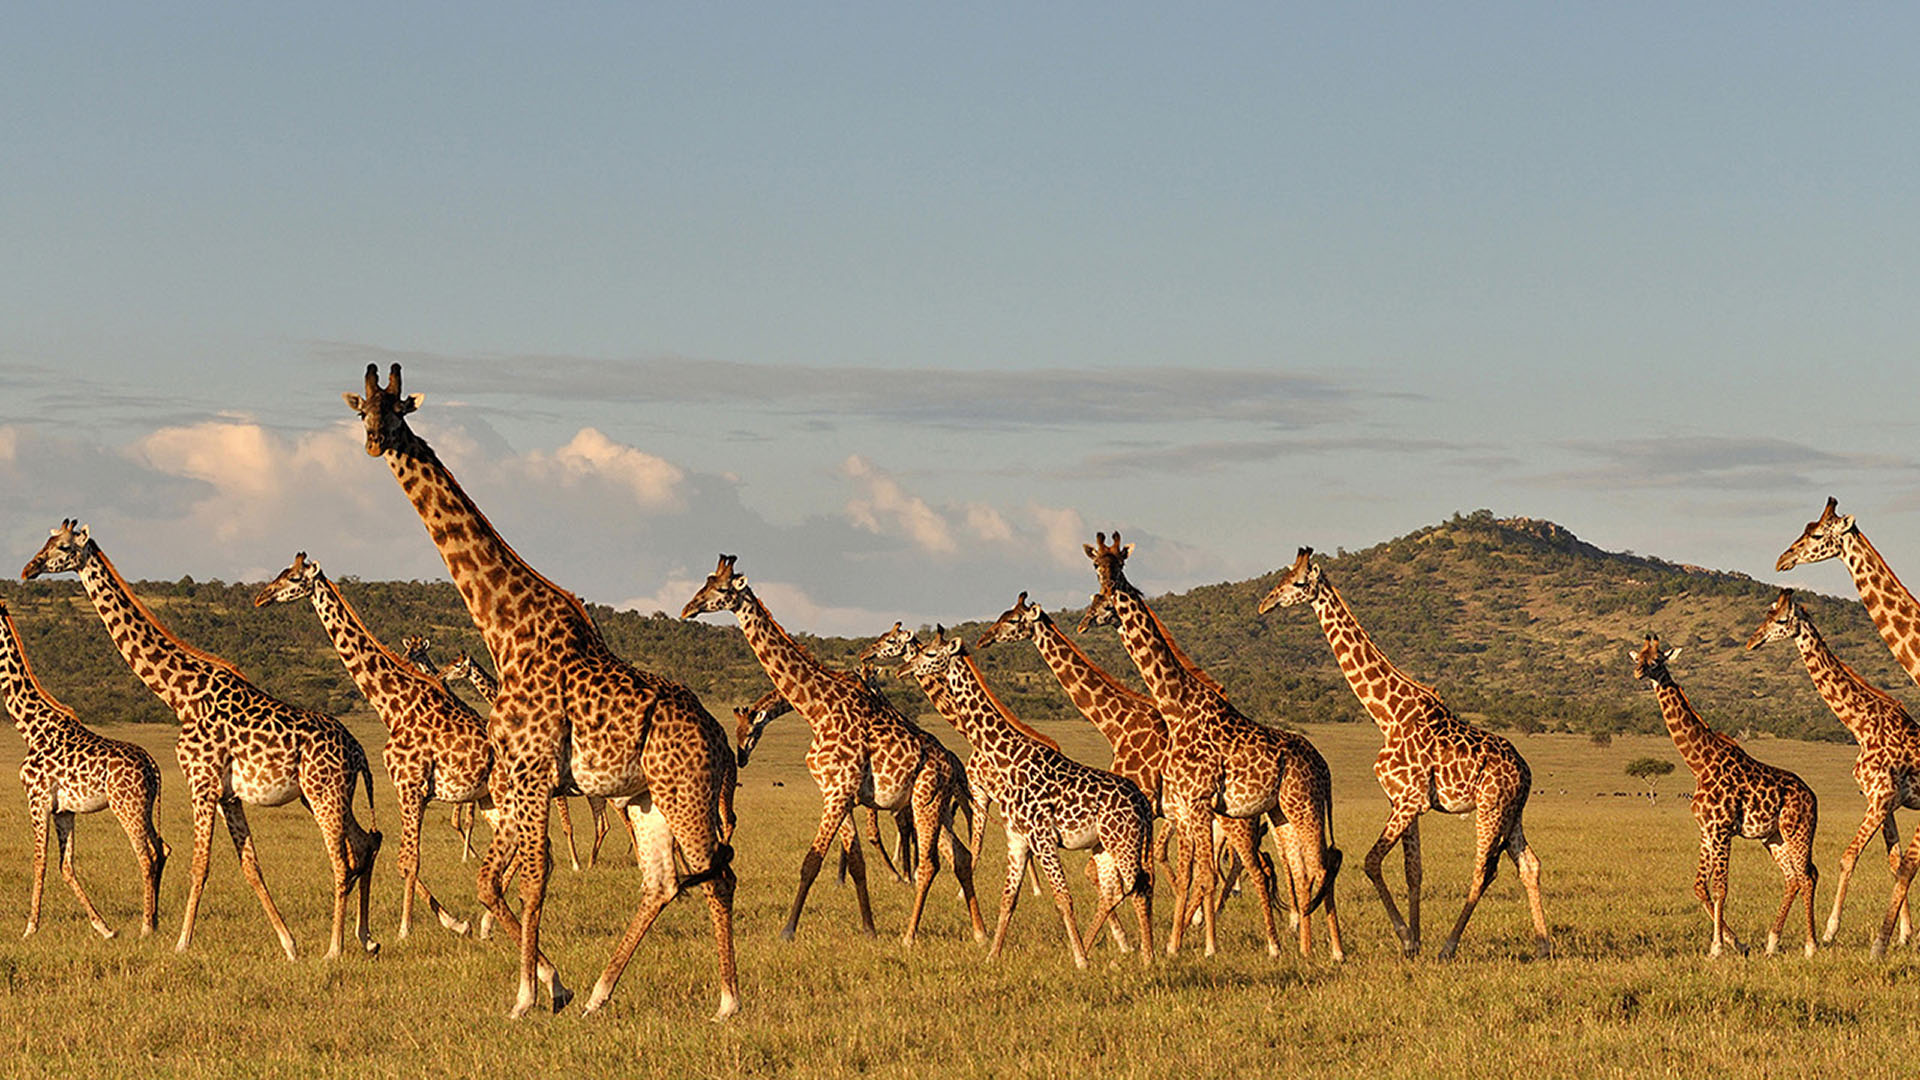 group of moving giraffe-deoadventure